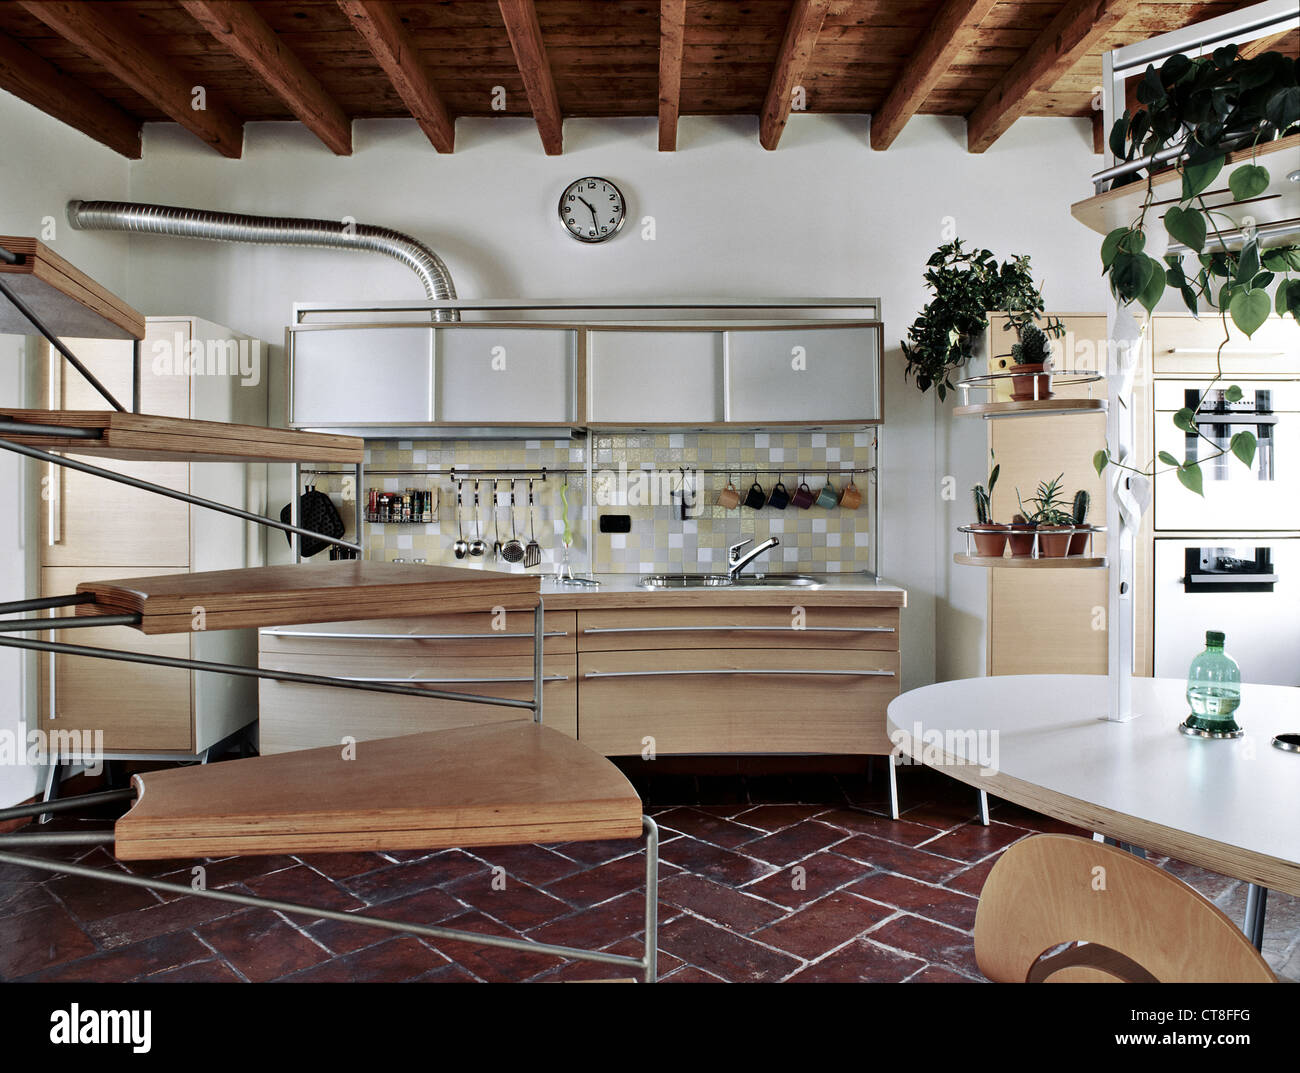 Kitchens With Terracotta Floors Modern Kitchen With Wood Ceiling And Terracotta Floor Stock Photo